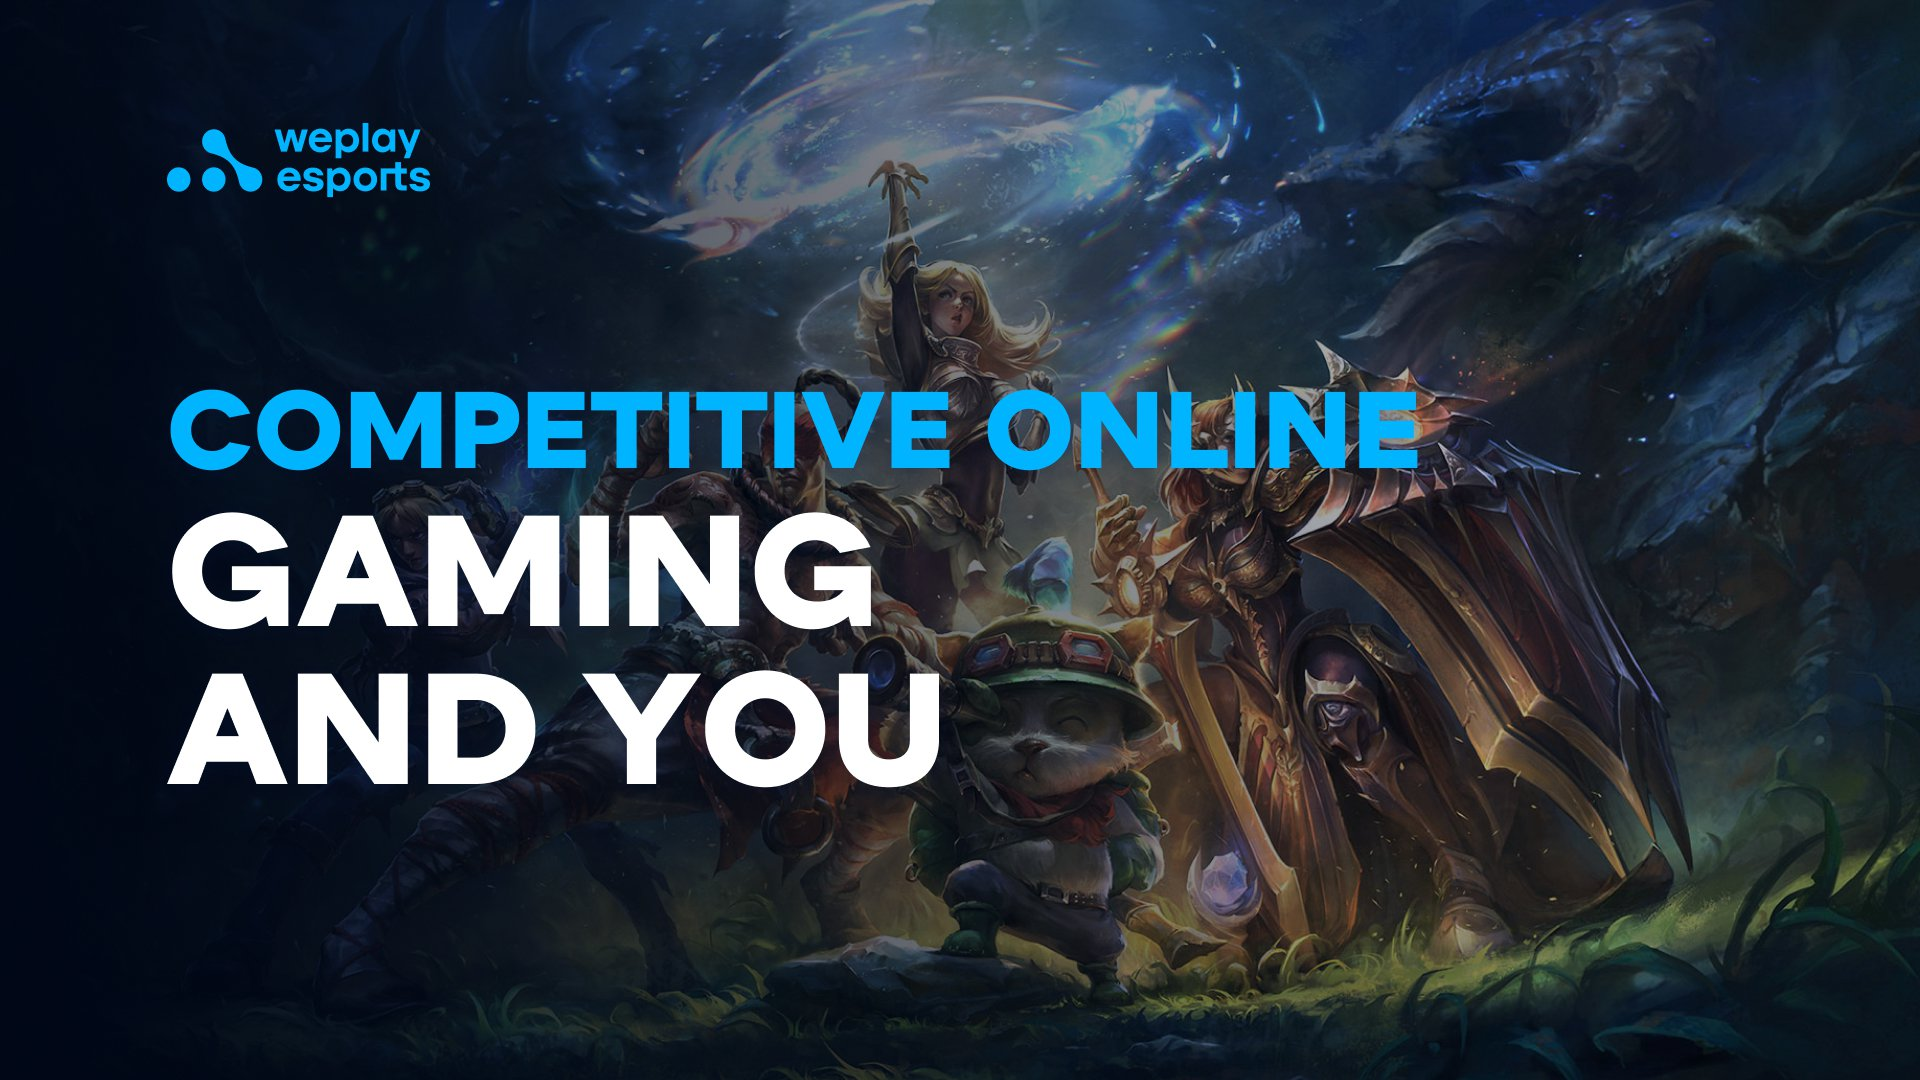 Competitive Online Gaming and You